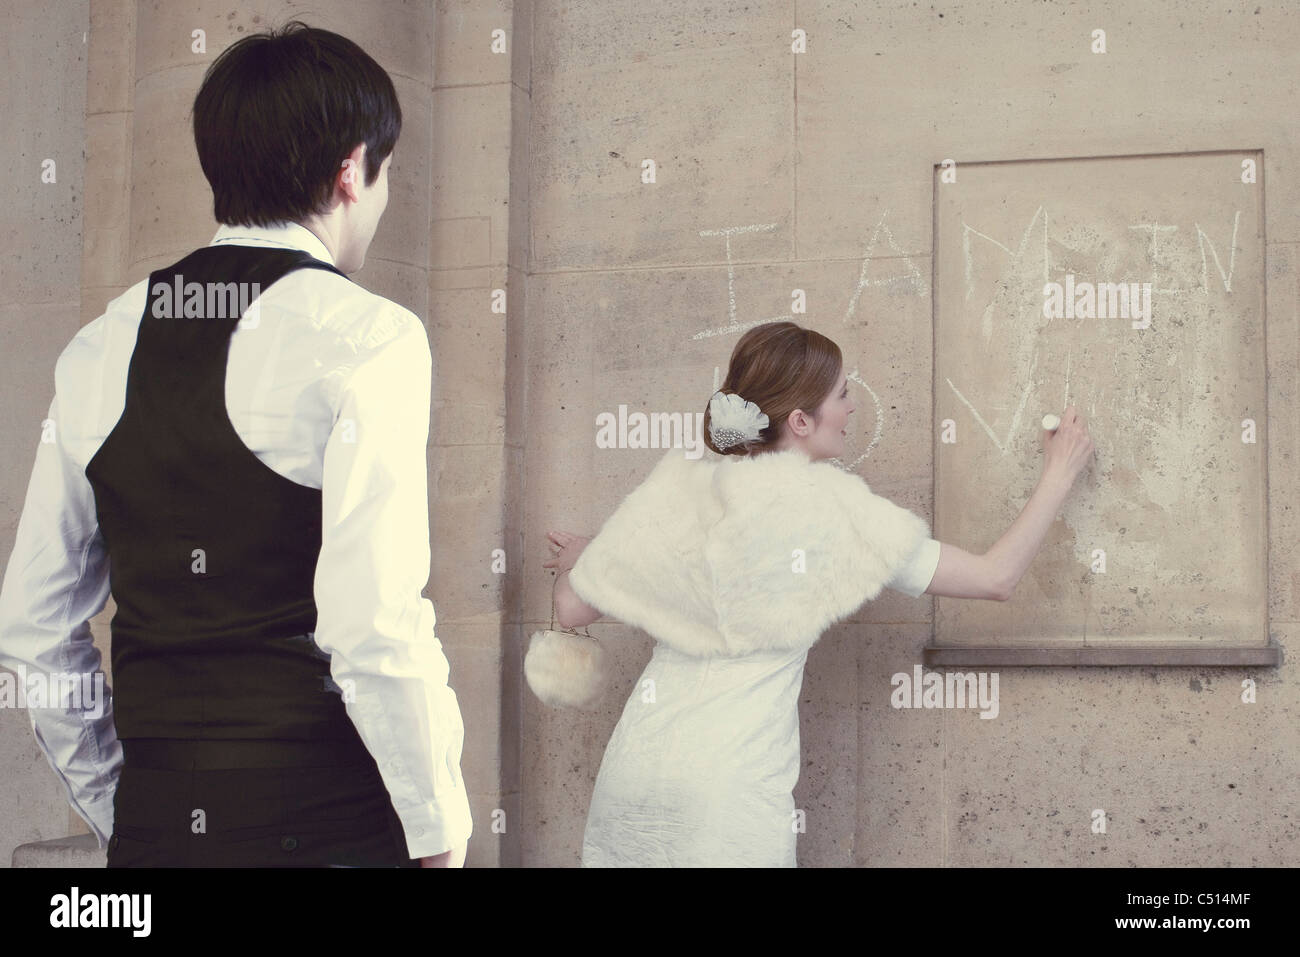 Bride writing 'I AM IN LOVE' on wall, groom watching - Stock Image